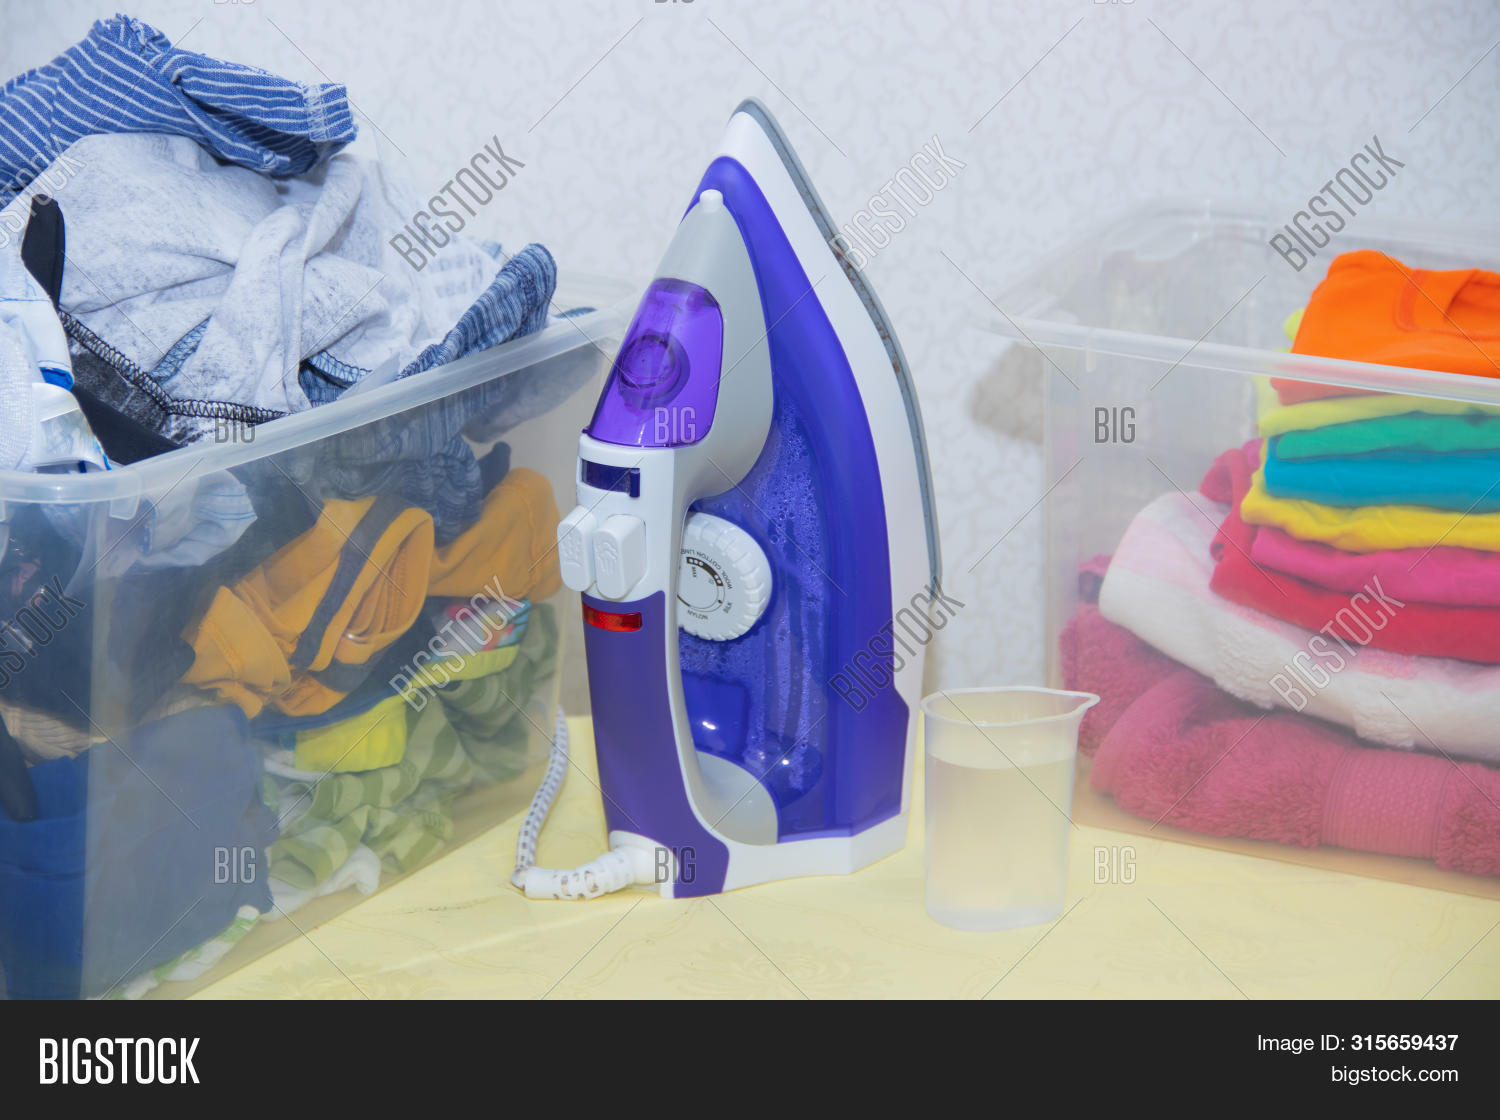 apparel,background,blue,board,bright,casual,clean,closeup,cloth,clothes,clothing,collection,color,colorful,concept,cotton,domestic,electric,equipment,fabric,folded,fresh,garment,group,heap,home,household,housework,indoors,iron,ironed,ironing,isolated,laundry,material,modern,nobody,organized,pile,press,shirts,stack,steam,style,table,textile,washed,wear,white